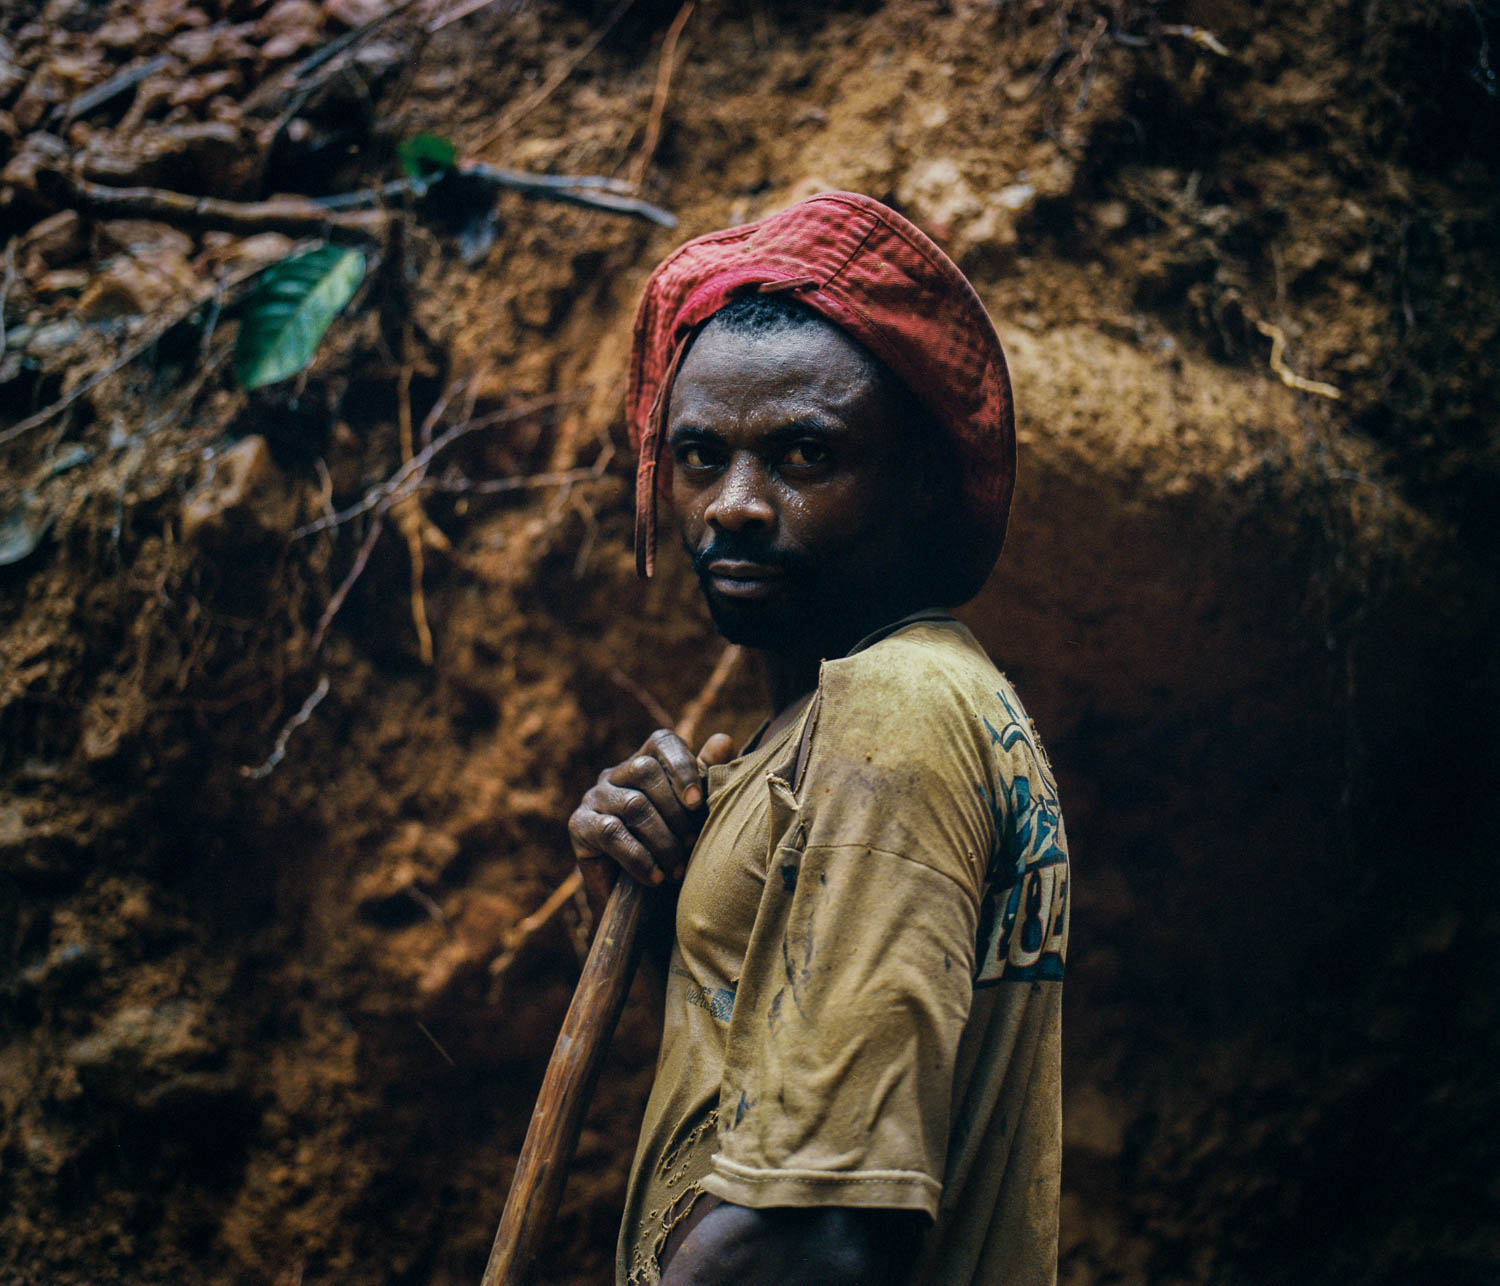 Migrants from the Bashi tribe of Bukavu region provide labor for the mines in territory controlled by the Raia Mutomboki. The Rega tribe, which make up the RM, are able to play supervisory roles due to their unique technical knowledge on the mining industry gained from laboring under the Belgian colonial enterprises of the past. Dec., 2013. South Kivu, Democratic Republic of the Congo.